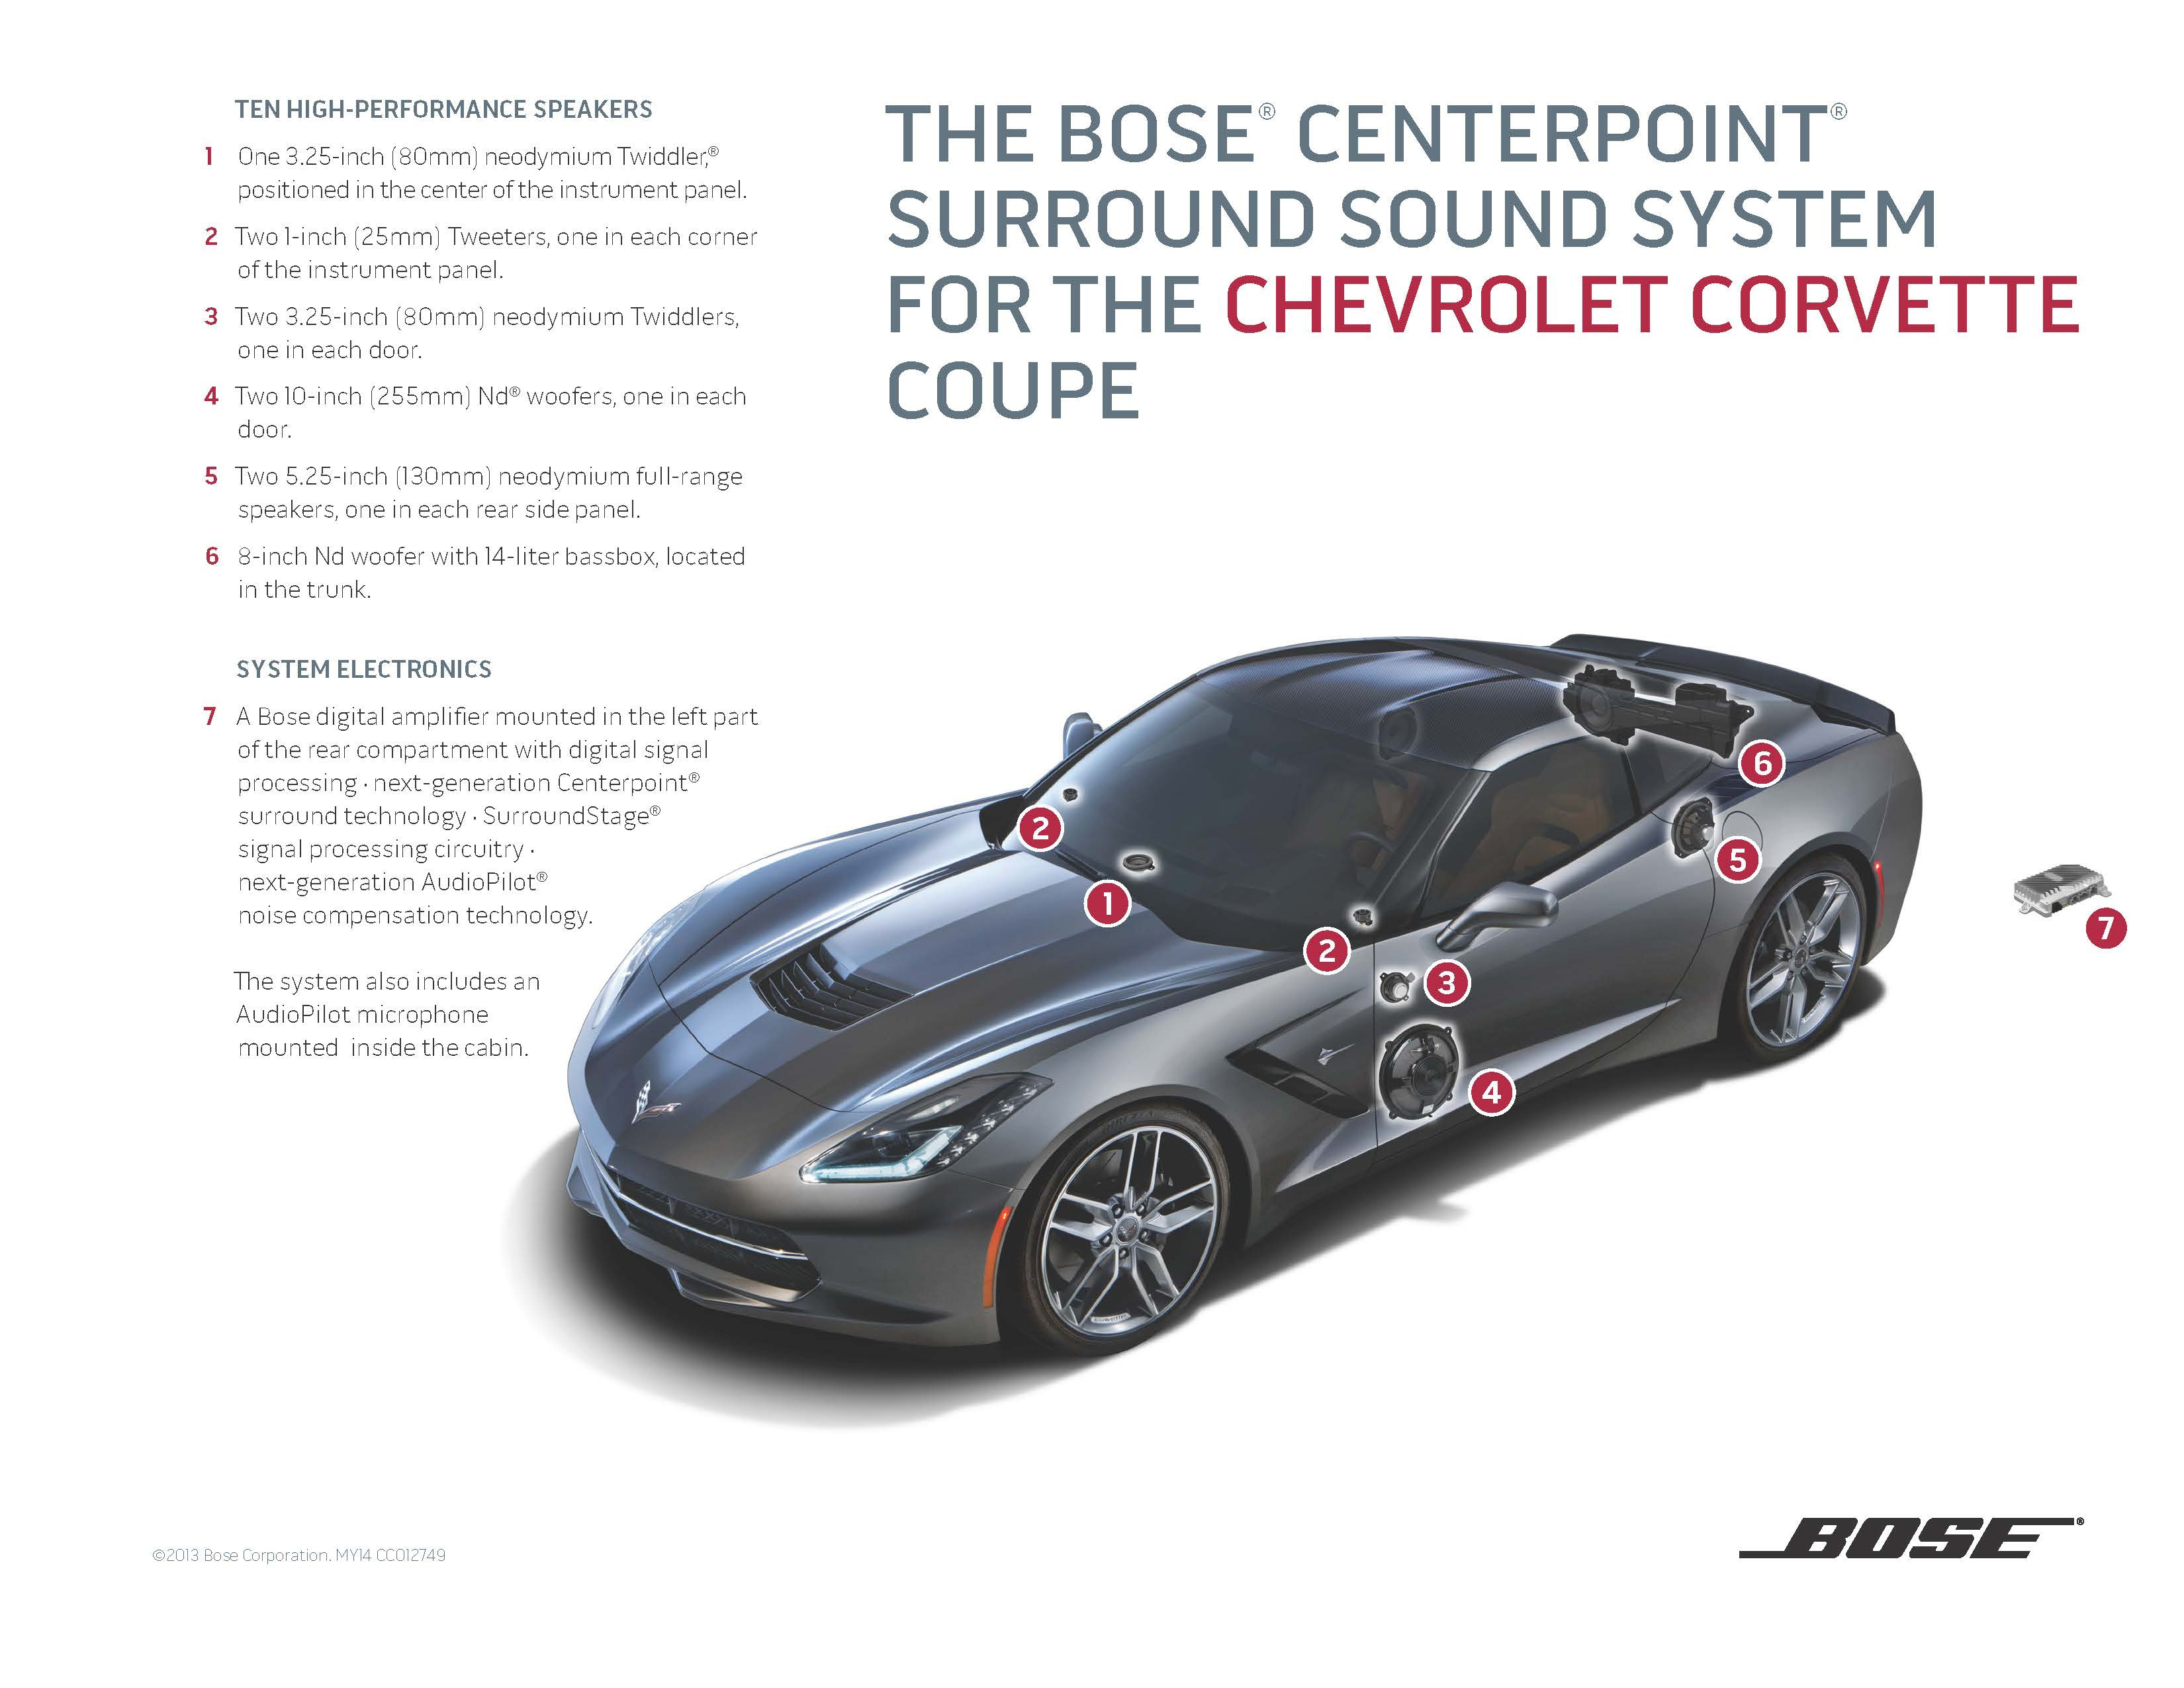 Bose Introduces Two New Sound Systems for the 2014 Chevrolet